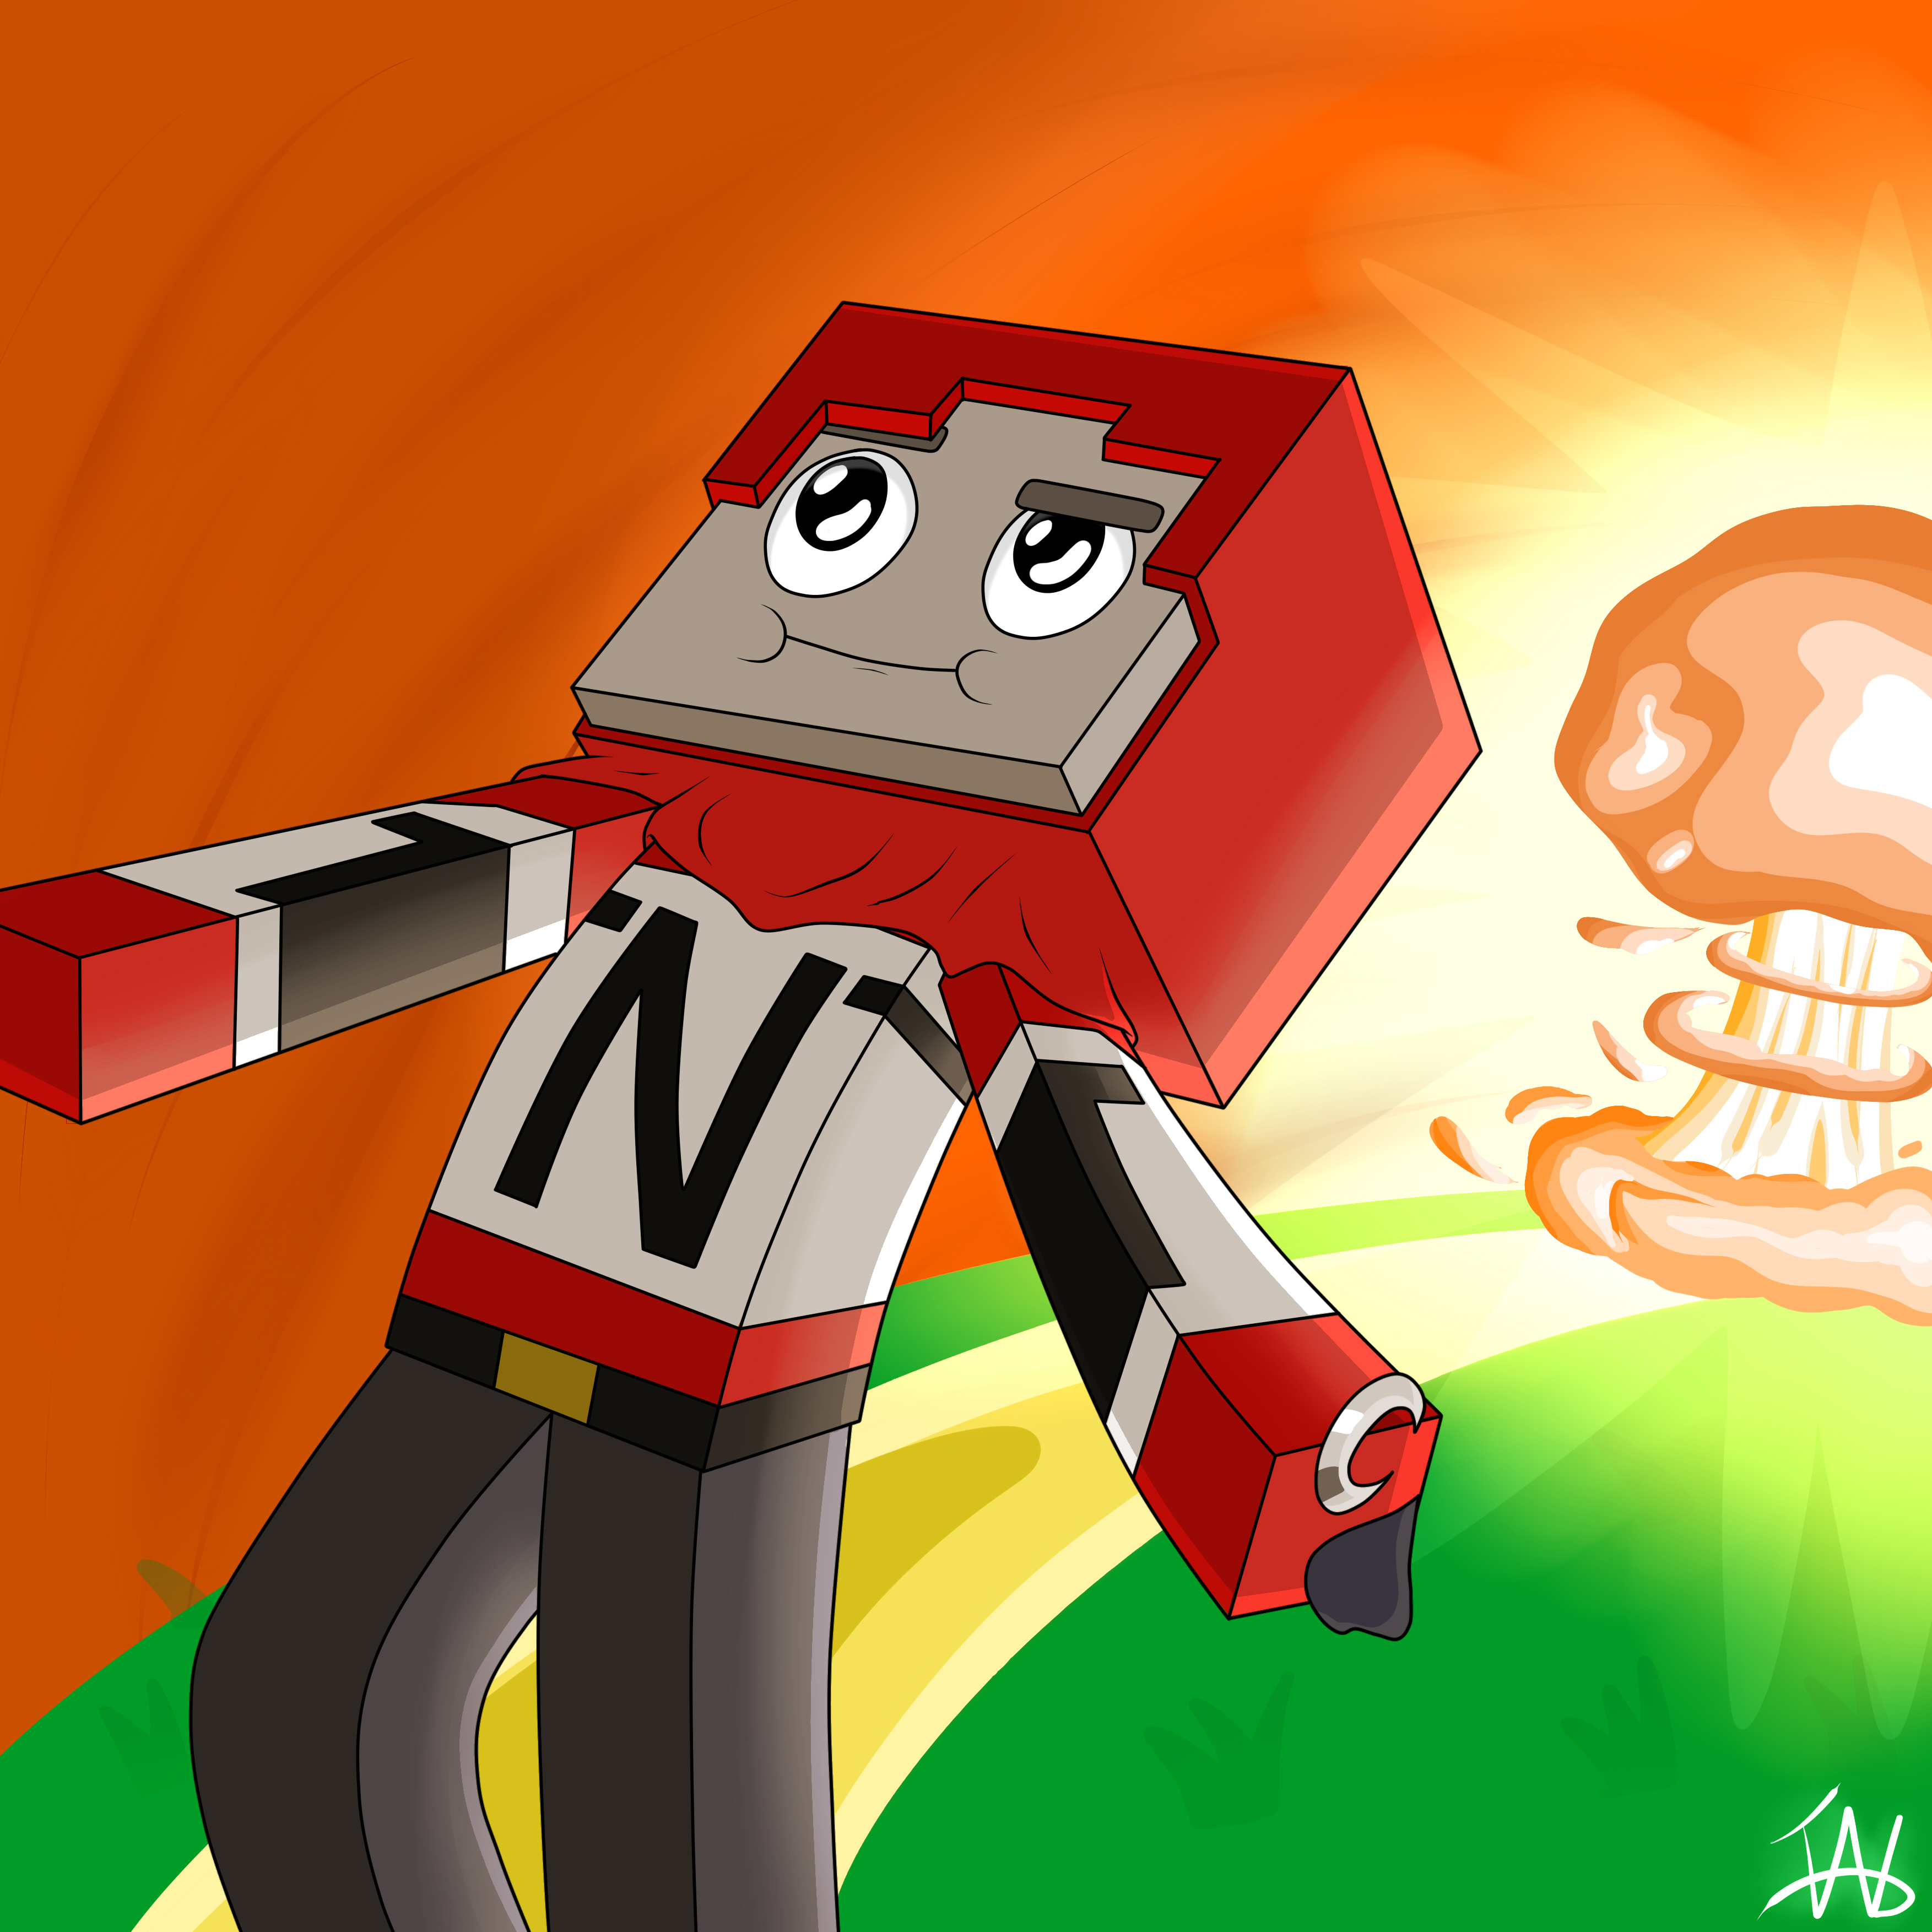 how to make tnt in real life and not minecraft